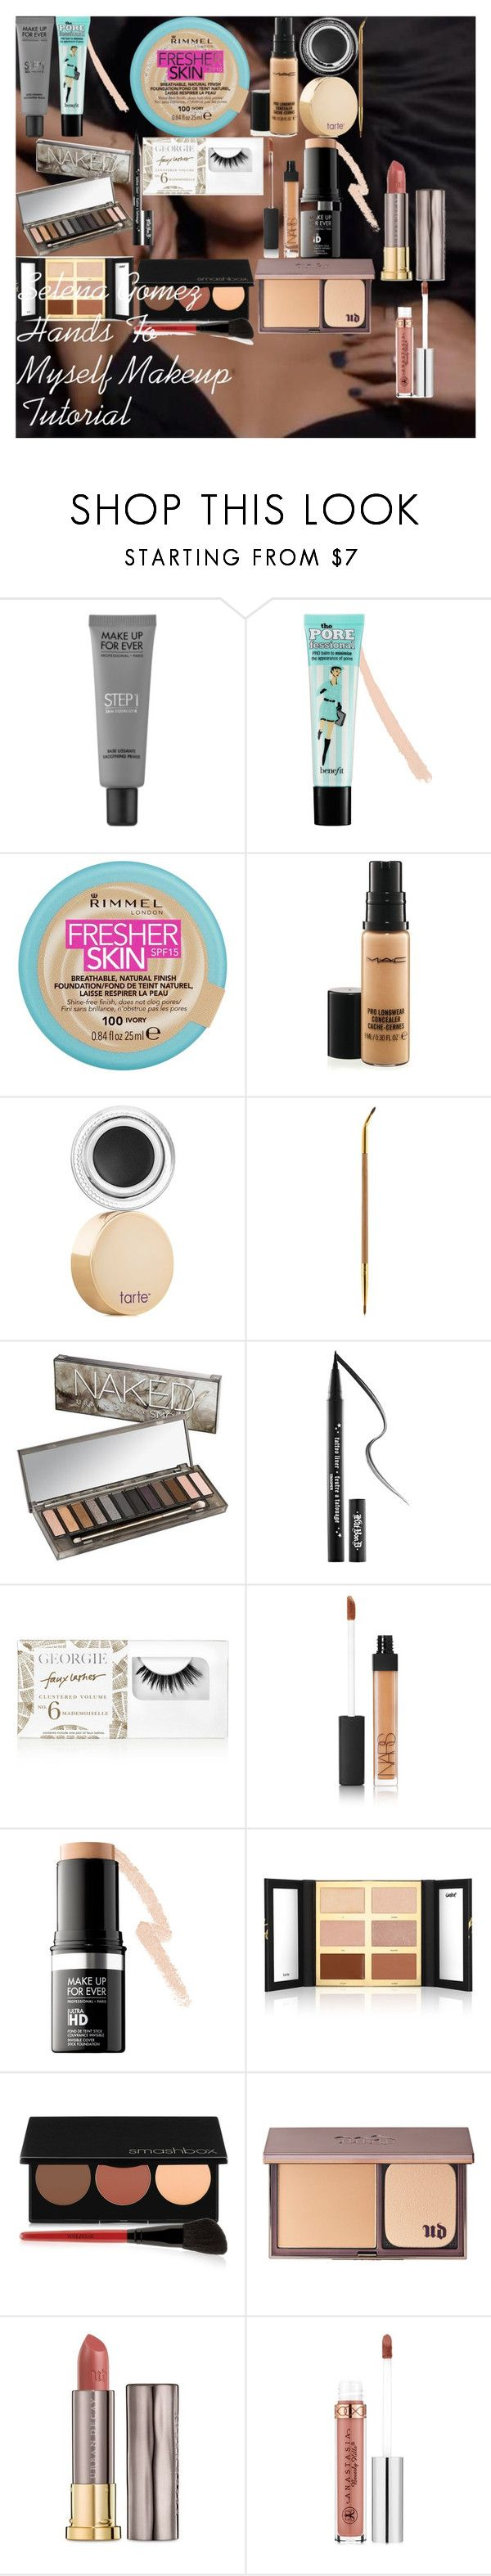 Selena Gomez Hands To Myself Makeup Tutorial by oroartye-1 on Polyvore featuring beauty, Urban Decay, tarte, MAKE UP FOR EVER, Benefit, NARS Cosmetics, MAC Cosmetics, Anastasia Beverly Hills, Kat Von D and Rimmel